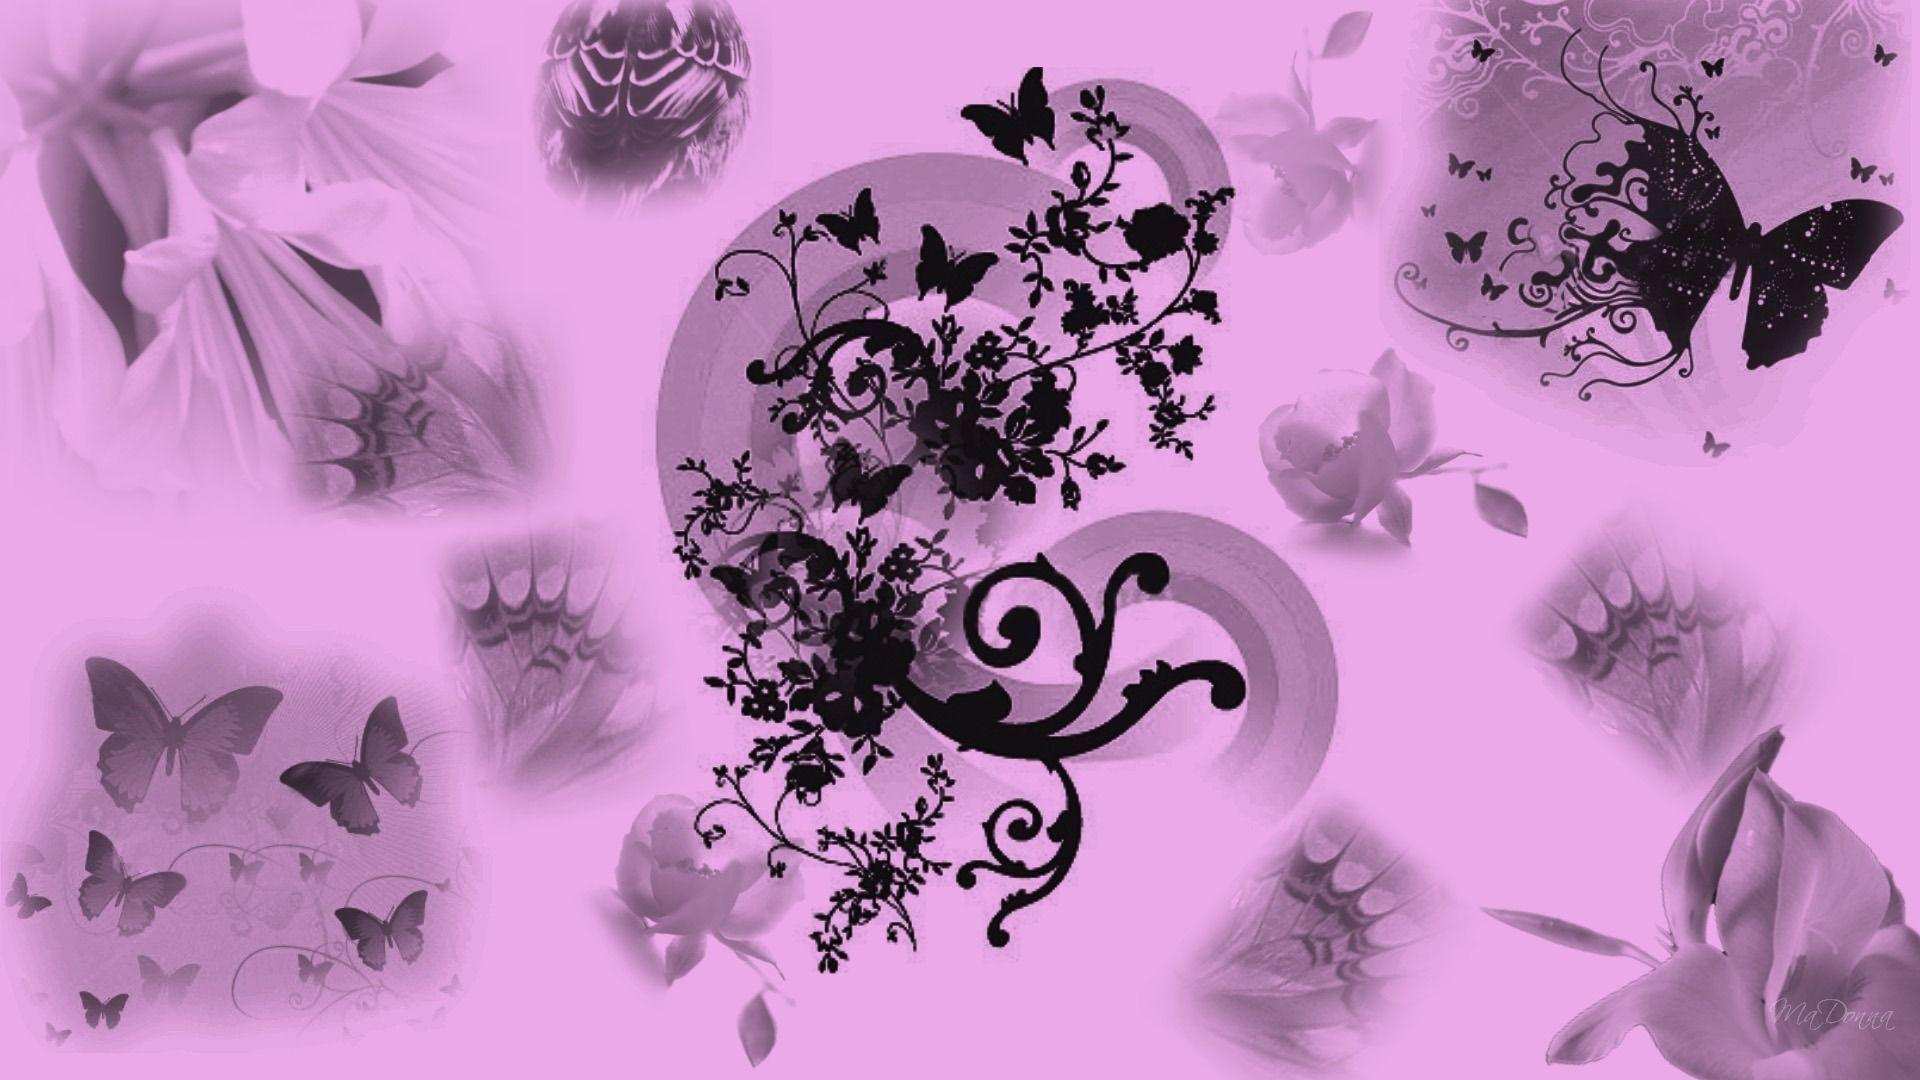 Wallpaper Chelsea 3d Android Abstract Butterfly Wallpapers Wallpaper Cave